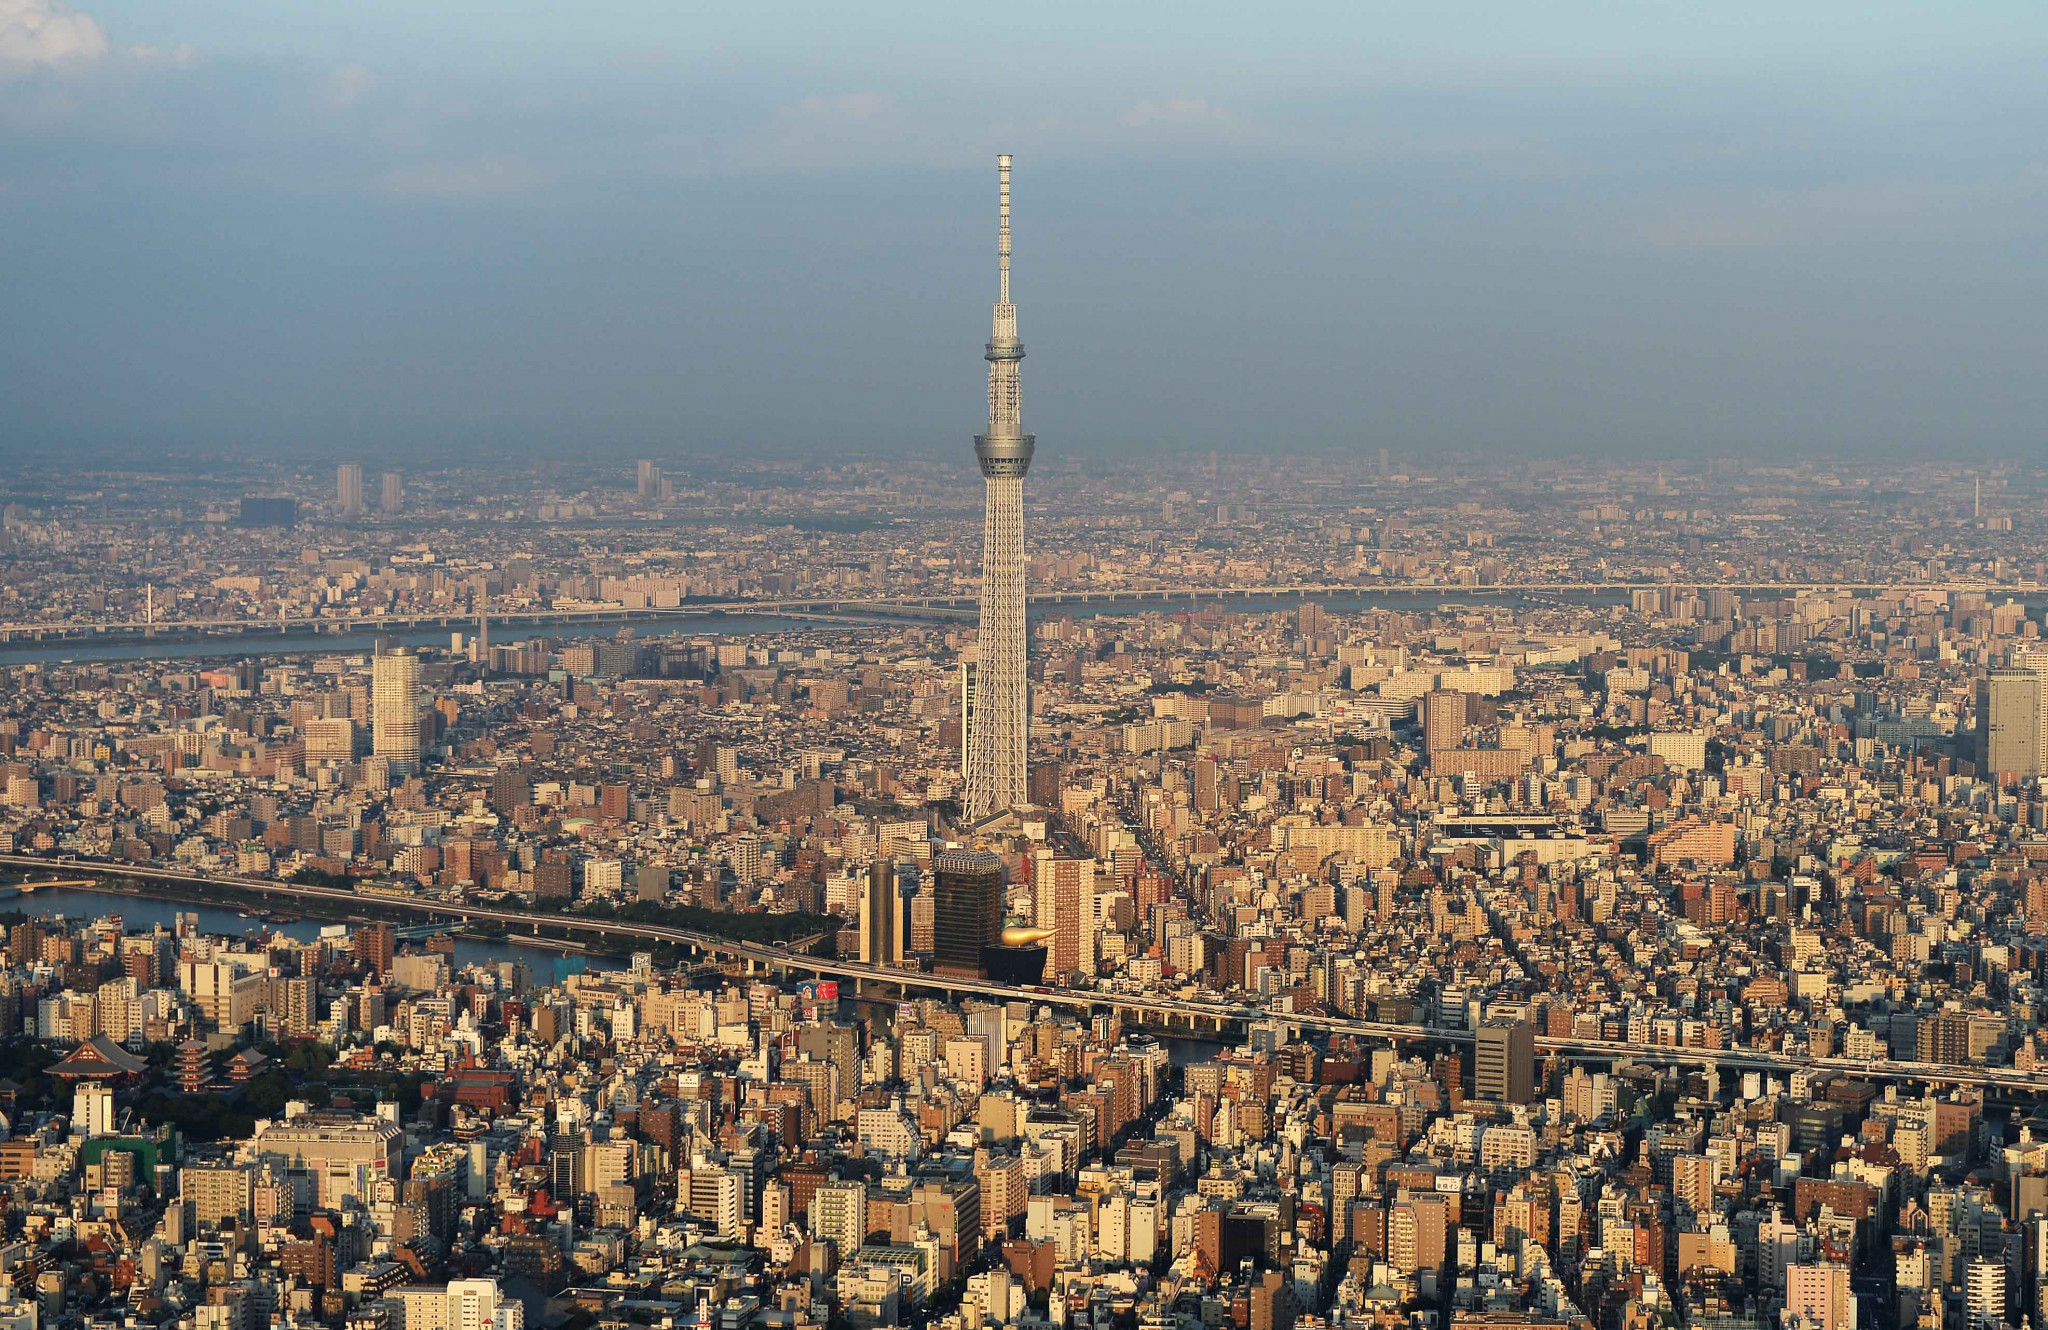 The Tokyo Skytree is a prominent landmark in the Japanese capital ©Getty Images